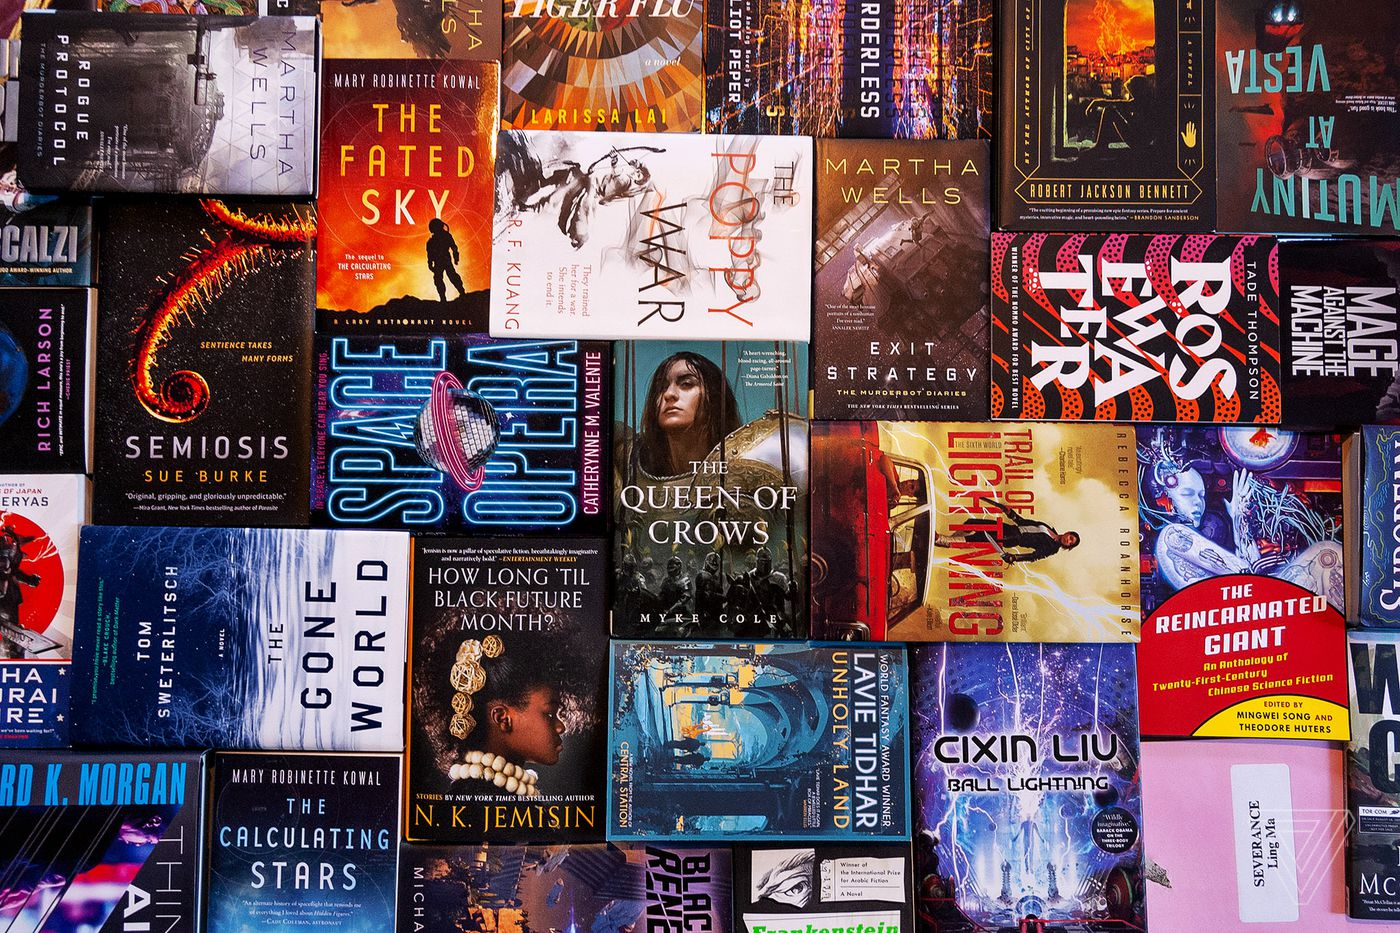 Our favorite science fiction and fantasy books of 2018 The